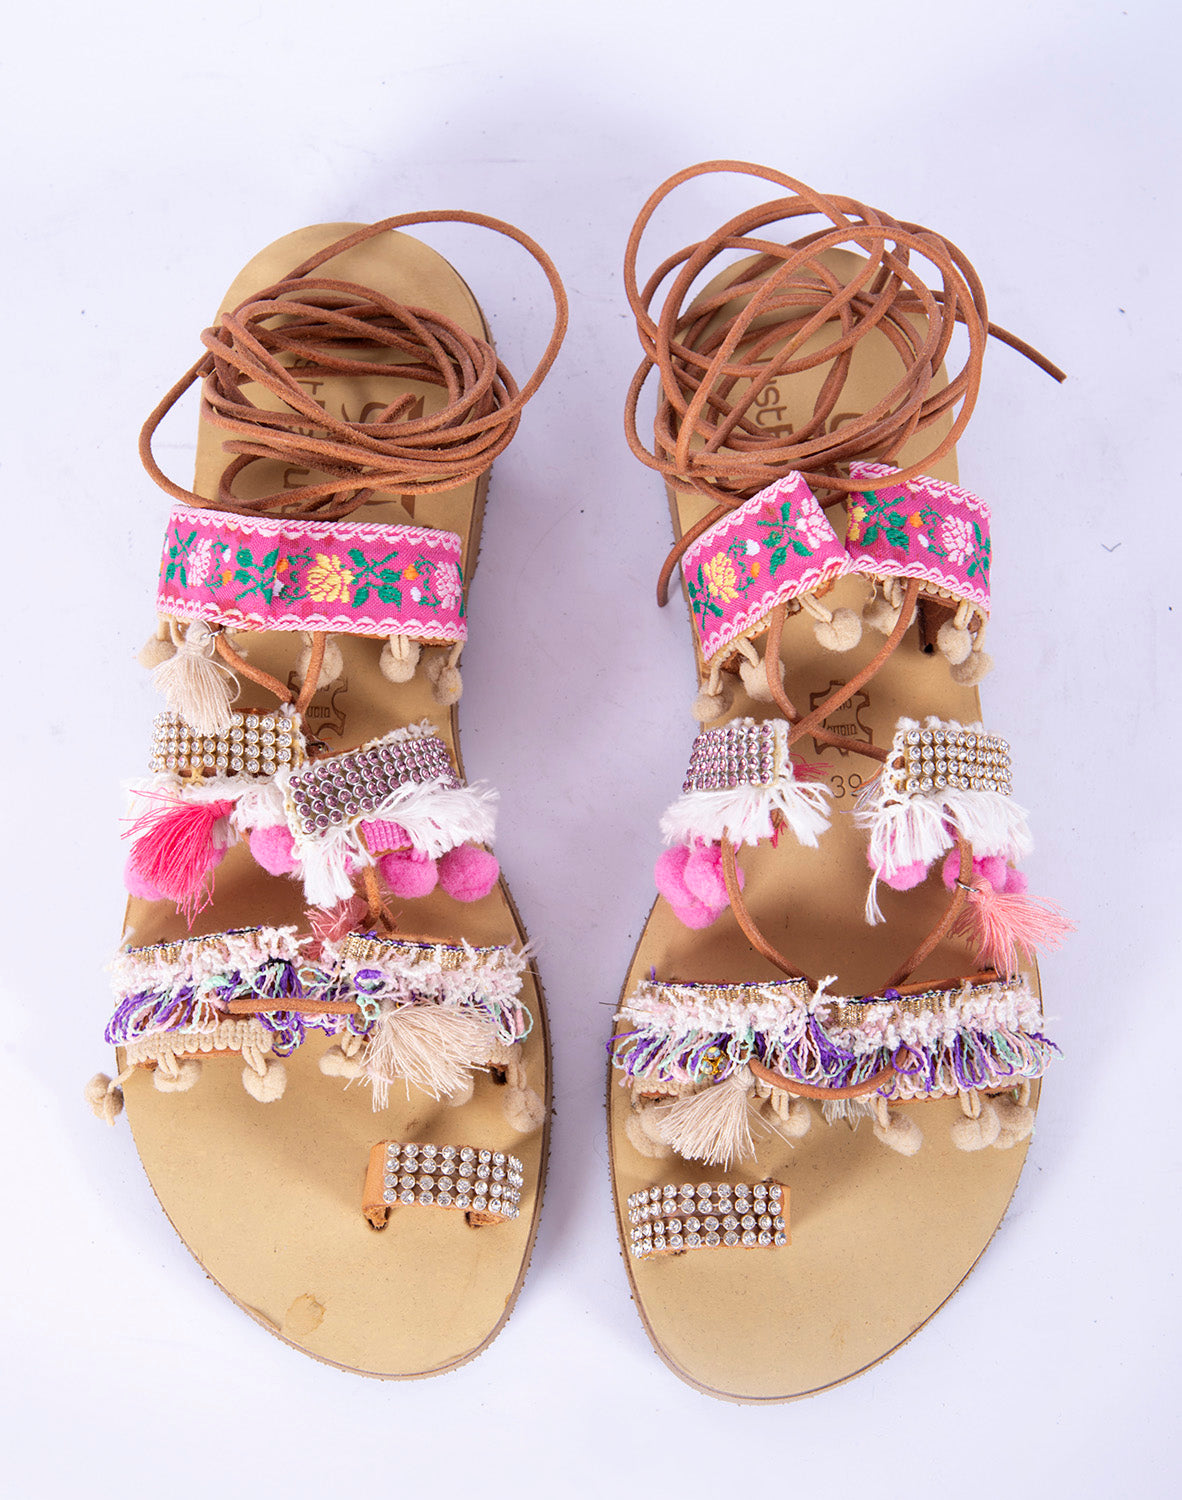 Boho strappy sandals with bom bom and embellishements